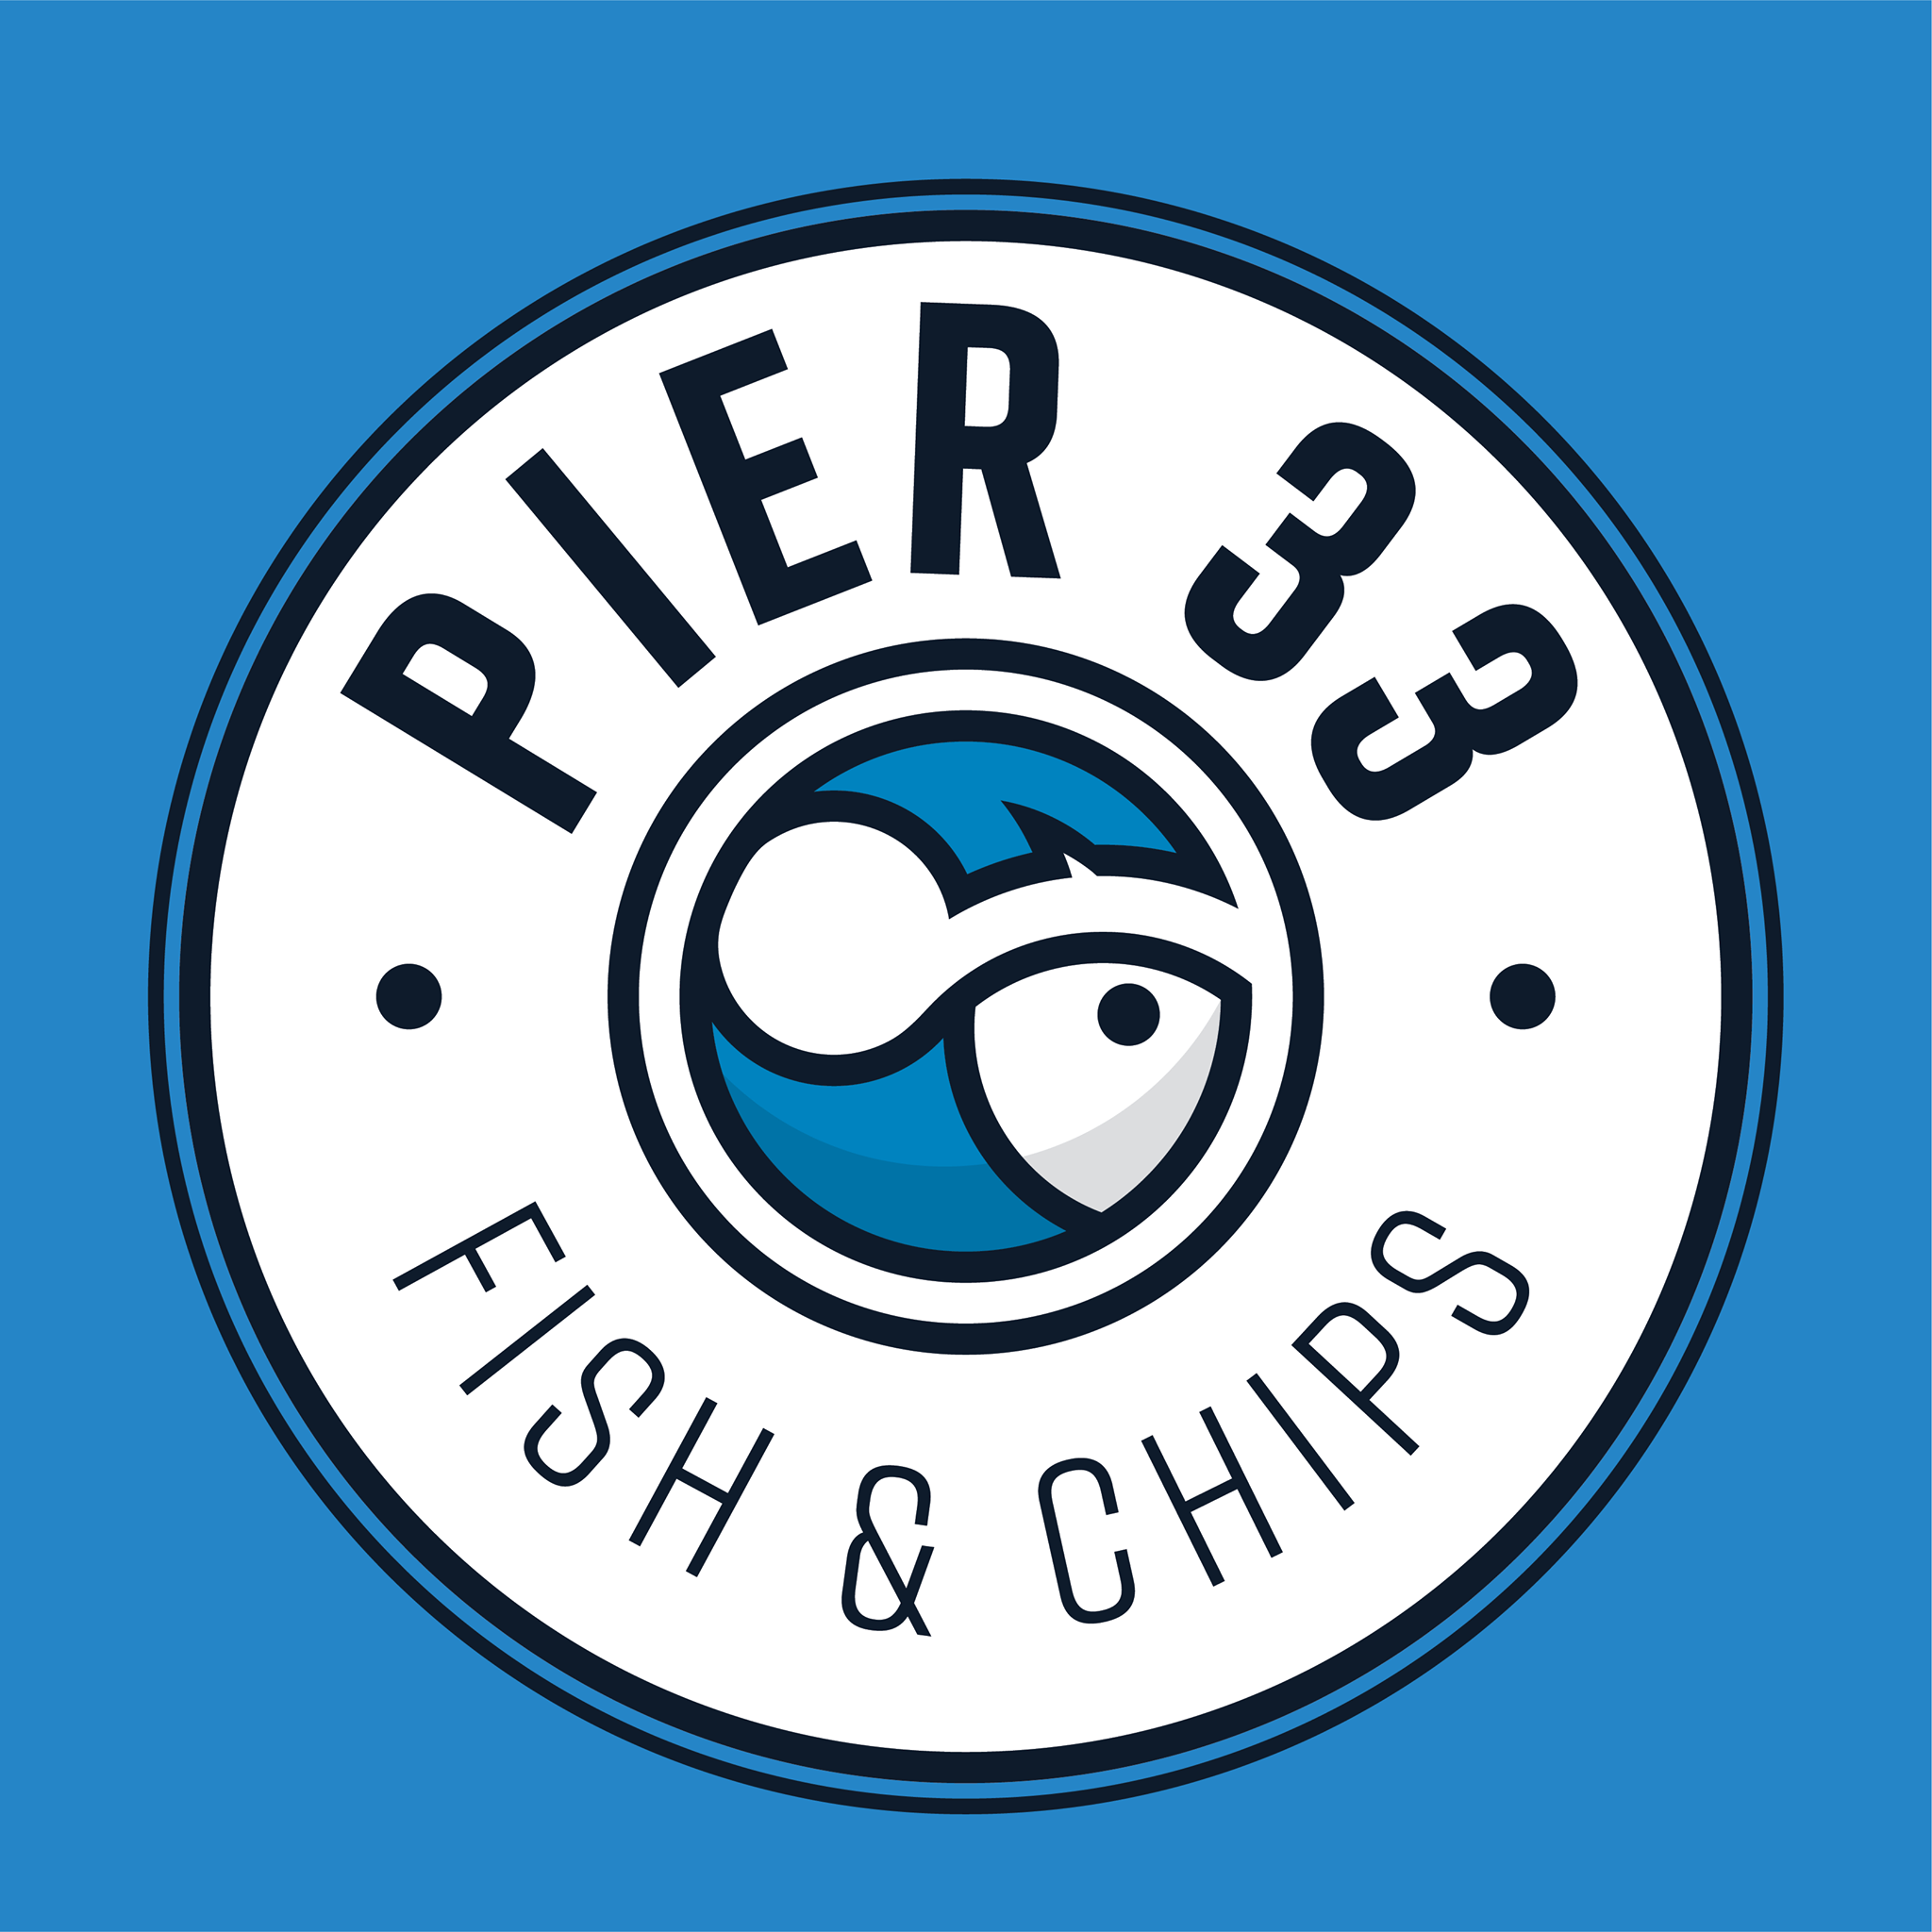 Pier 33 Fish and Chips